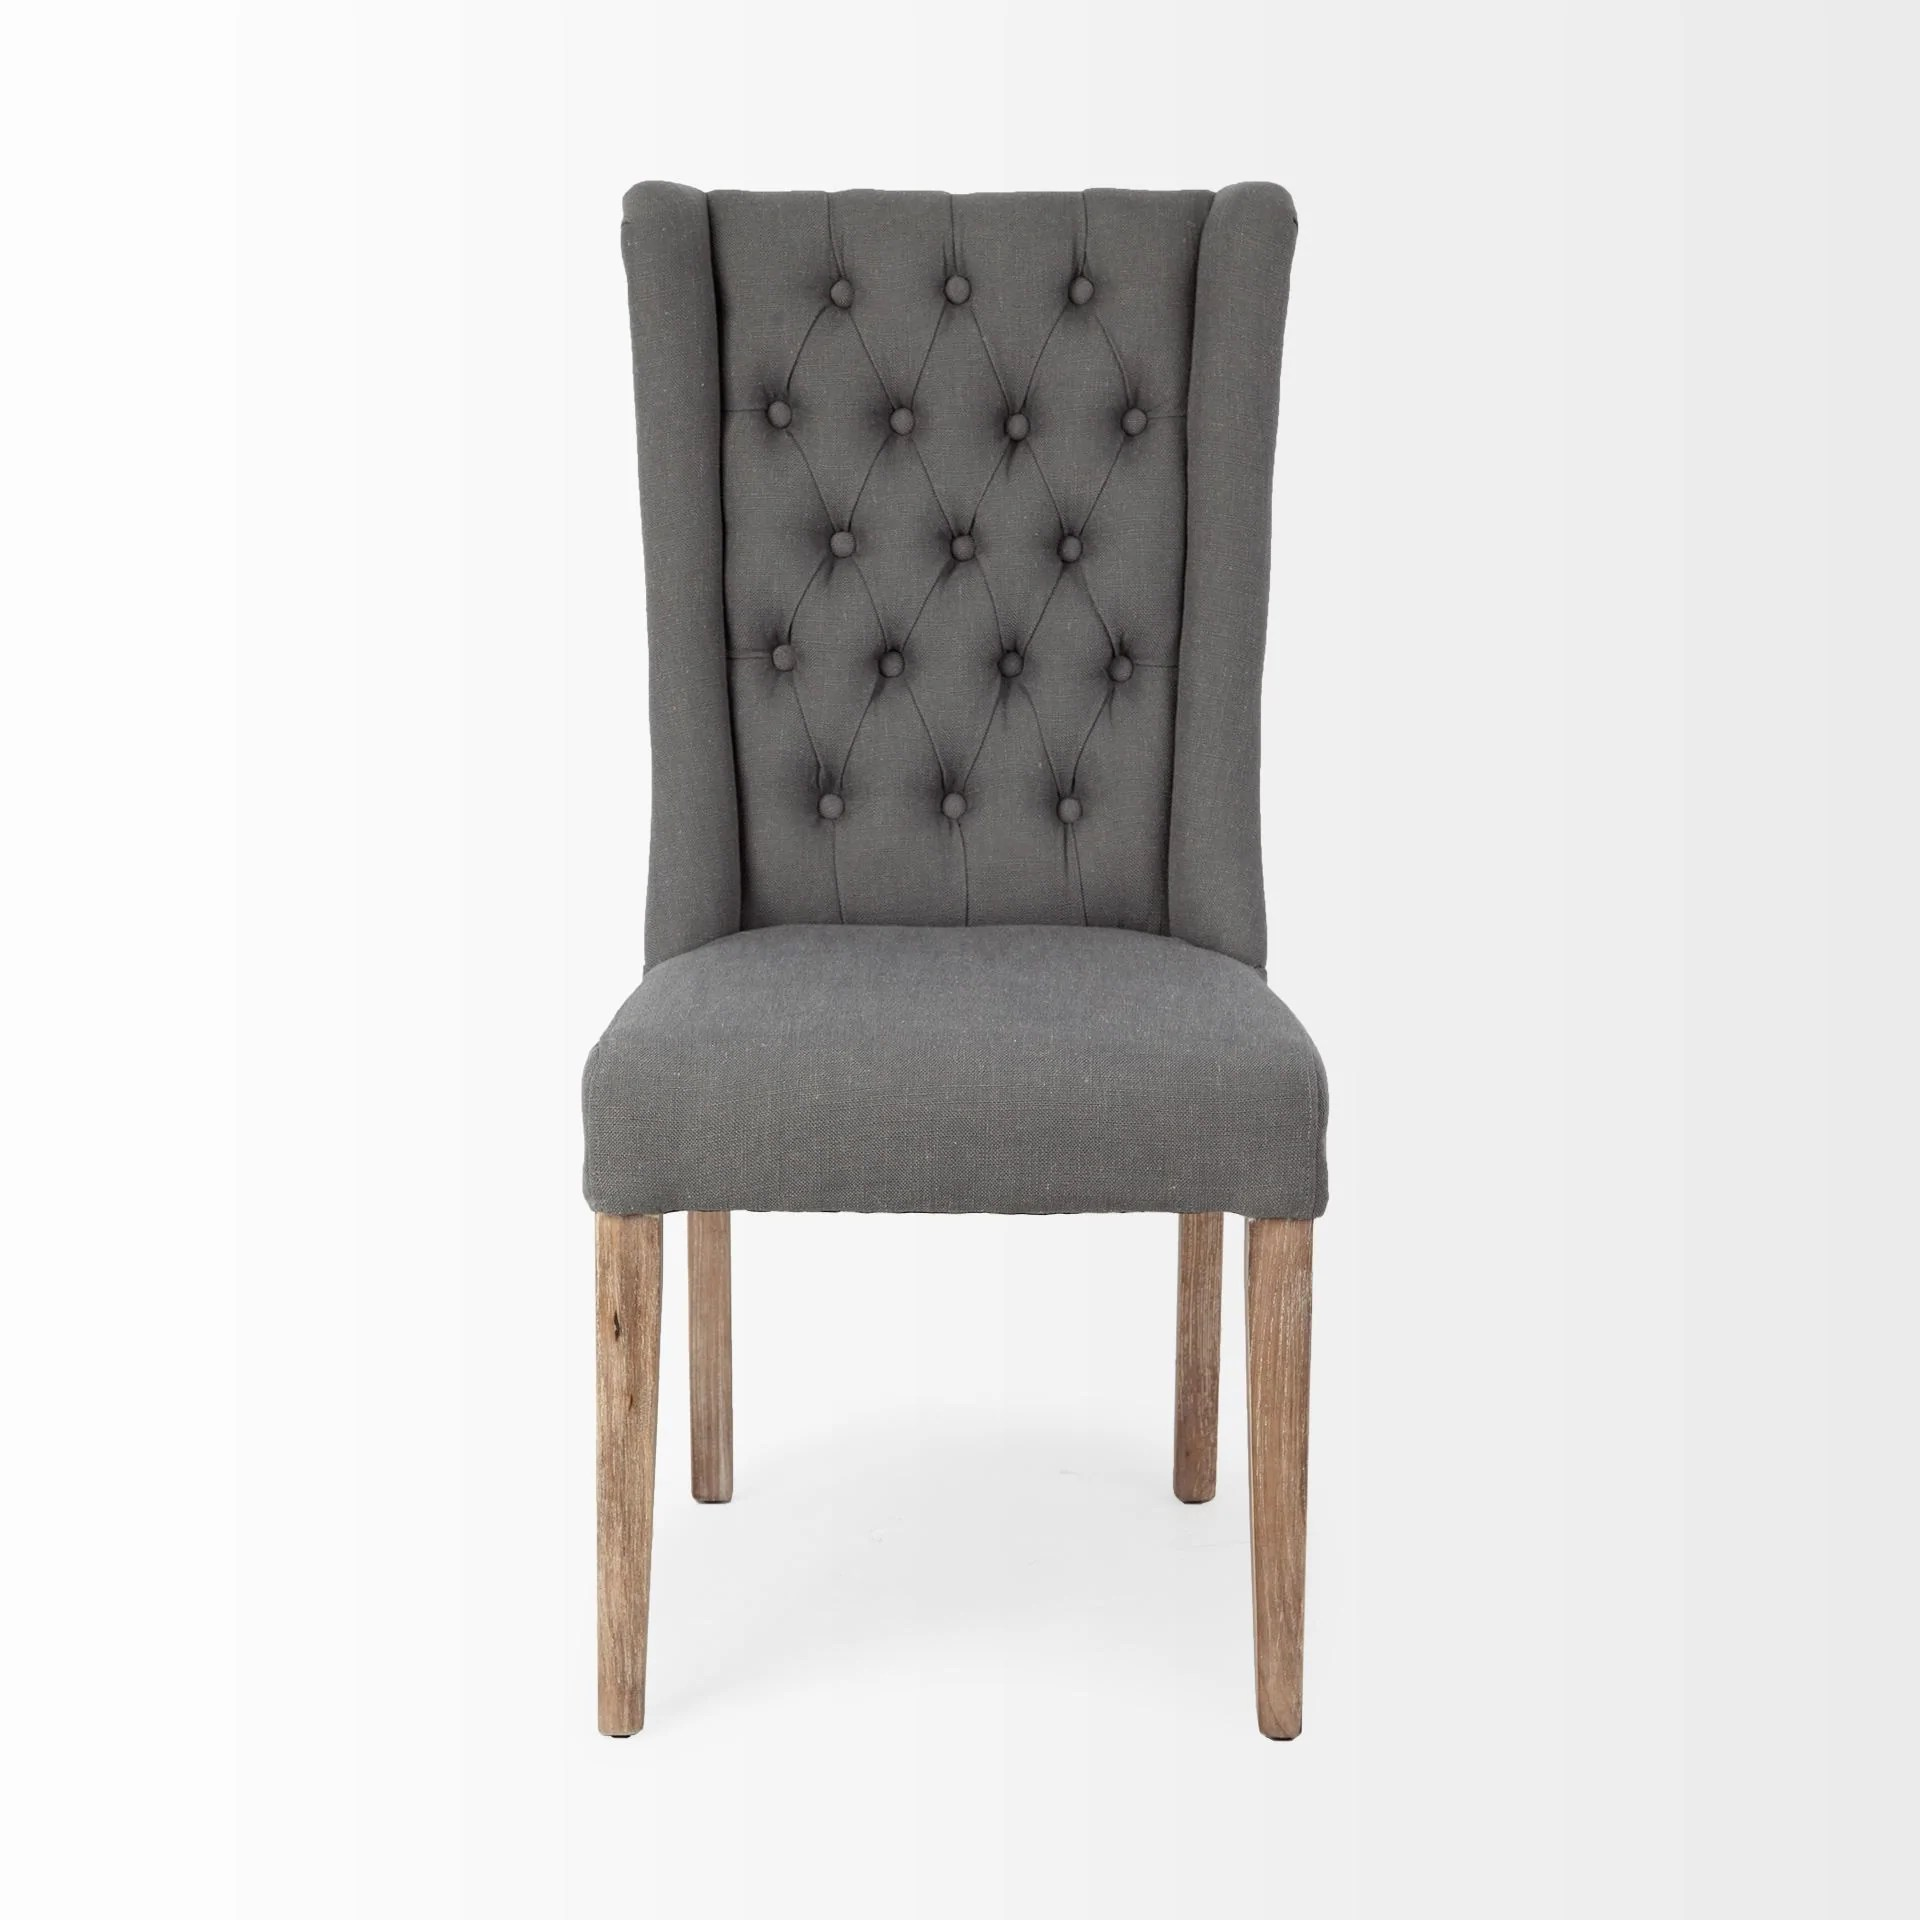 Jimelle Dining Chair Featuring Plush Linen Seating With A Tufted Back